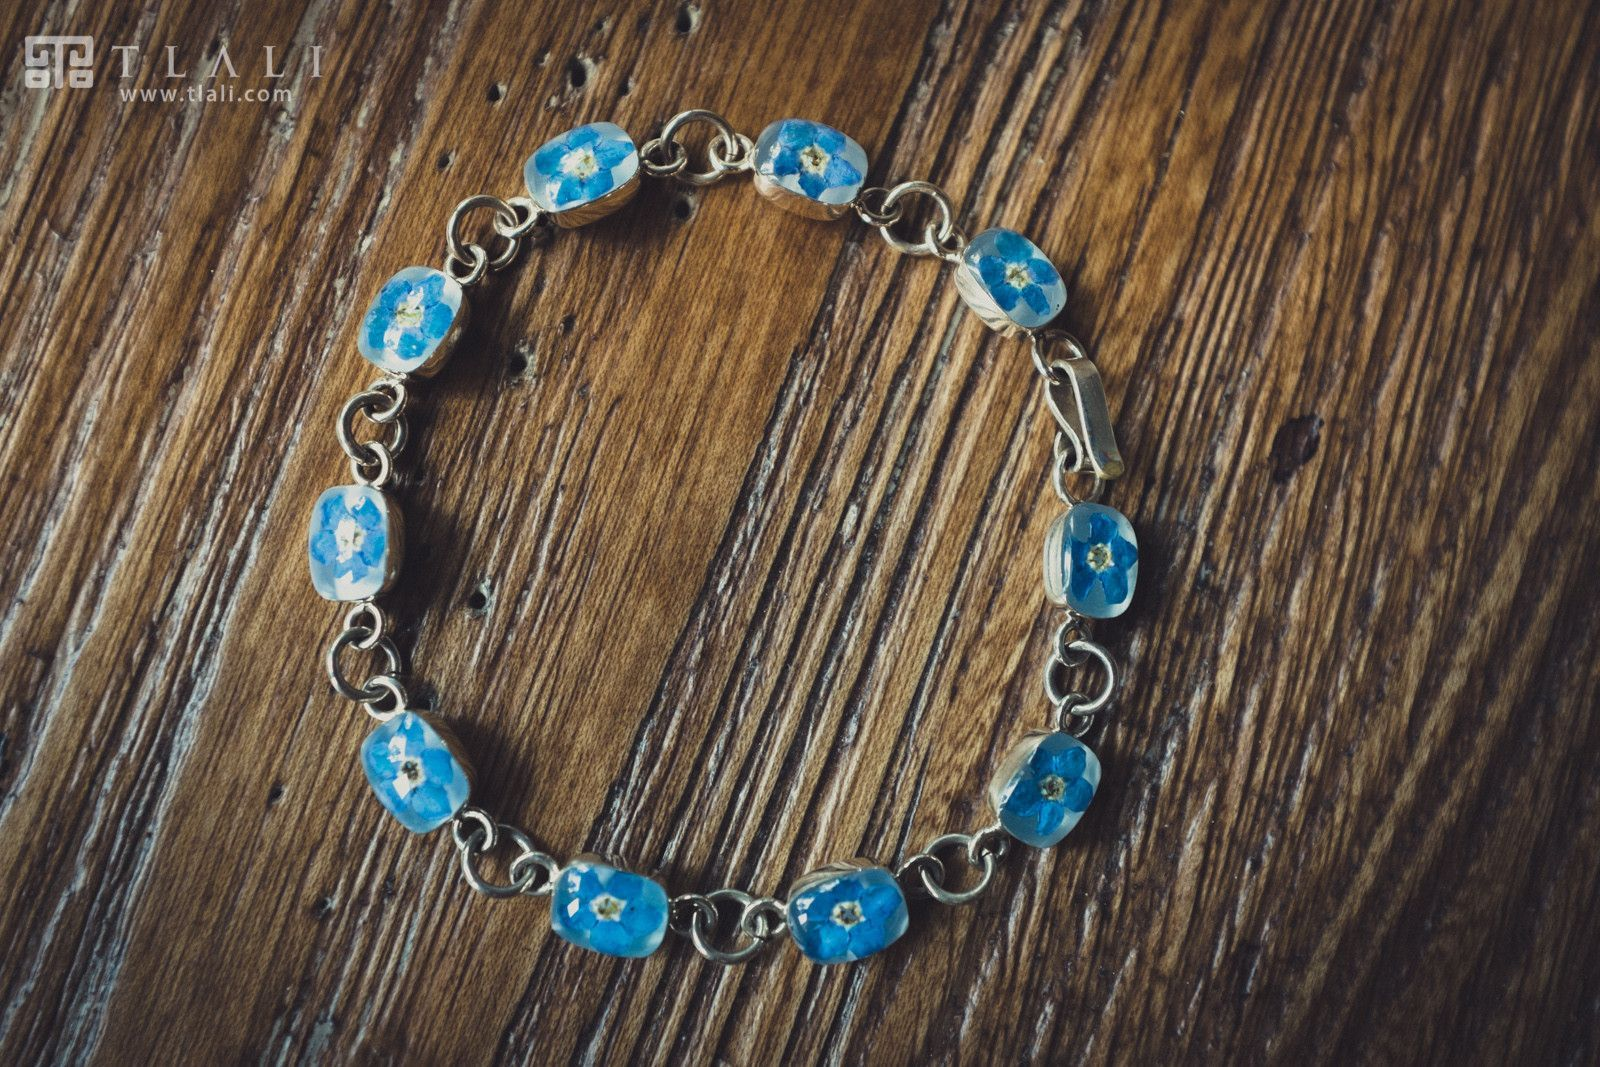 Forget-Me-Not Jewelry: Square Elegant Bracelet